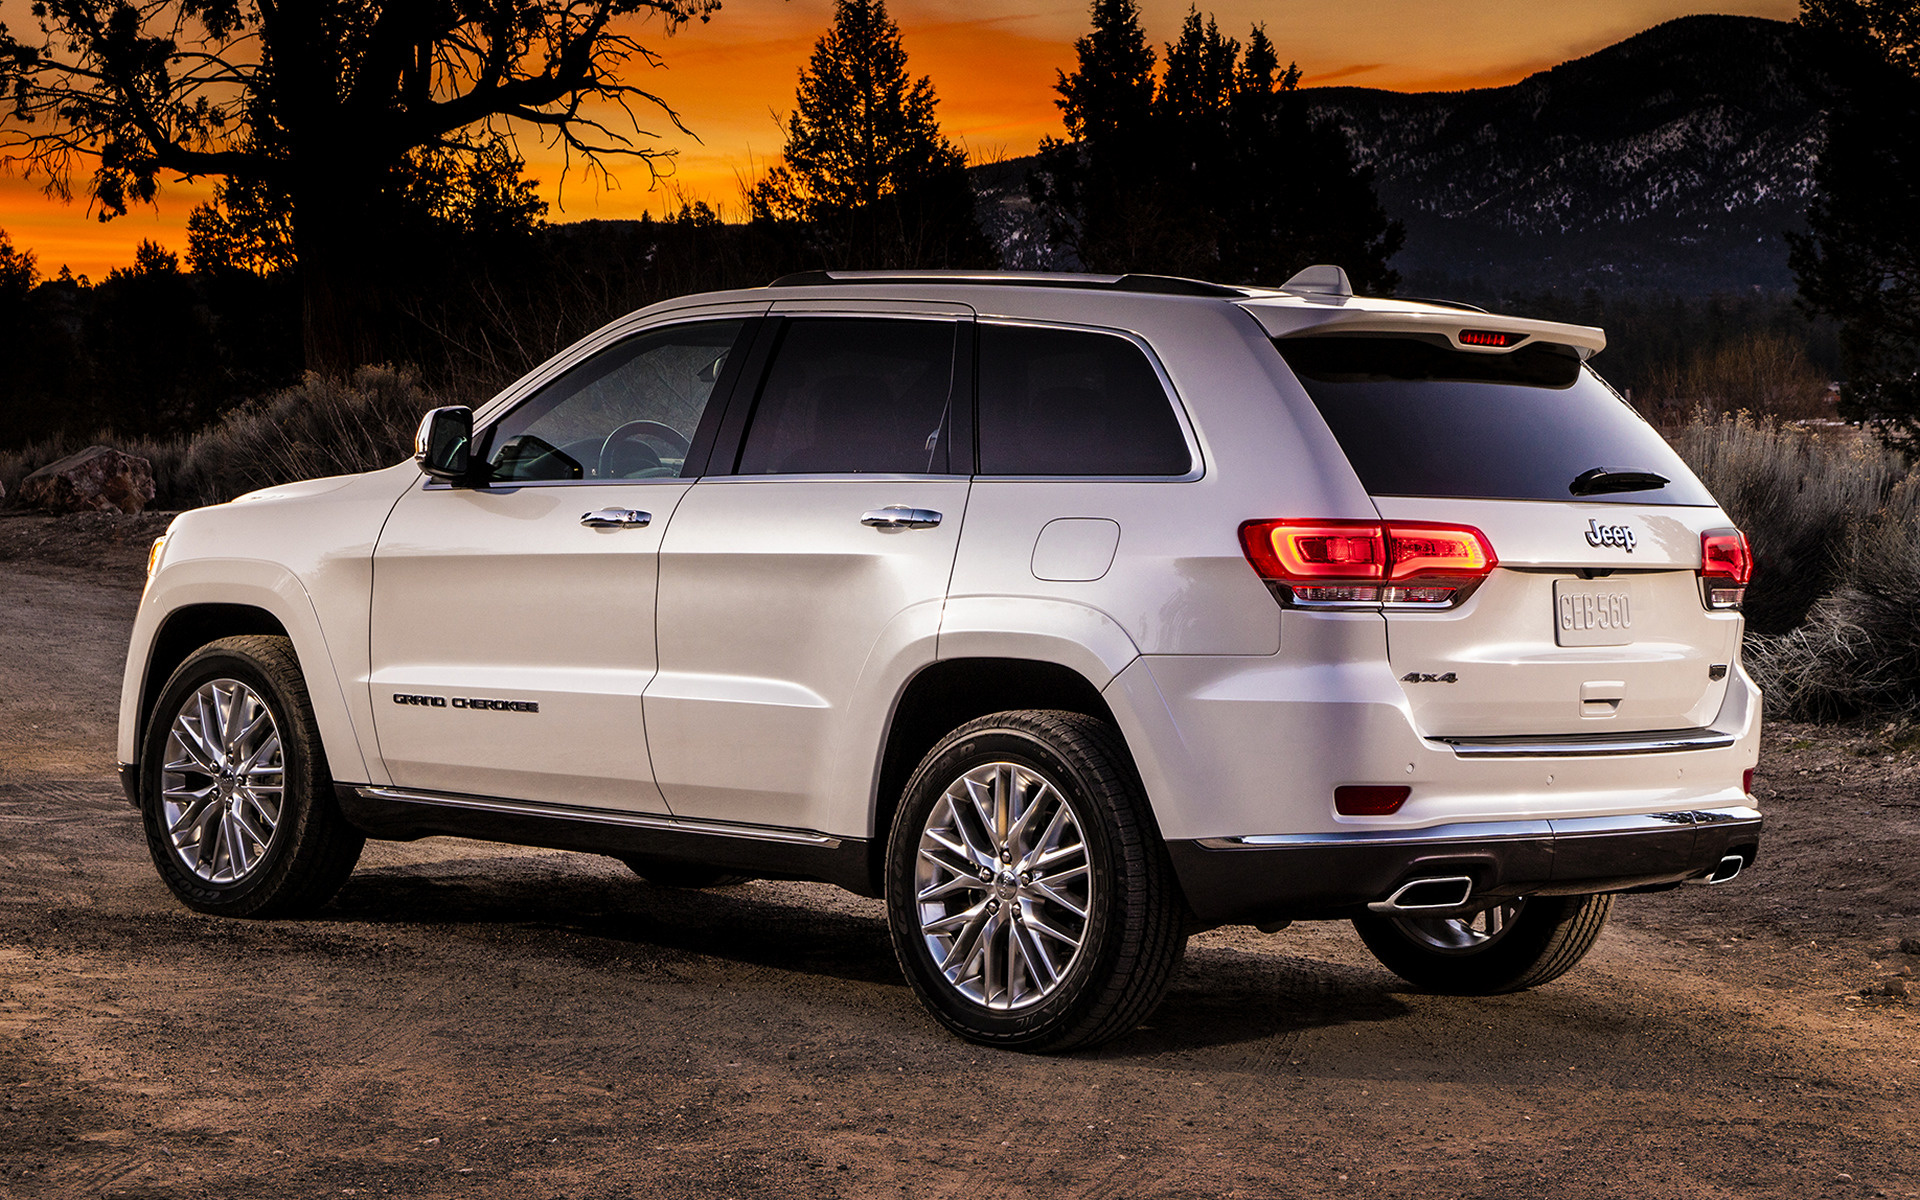 Jeep Summit 2017 >> 2017 Jeep Grand Cherokee Summit - Wallpapers and HD Images ...